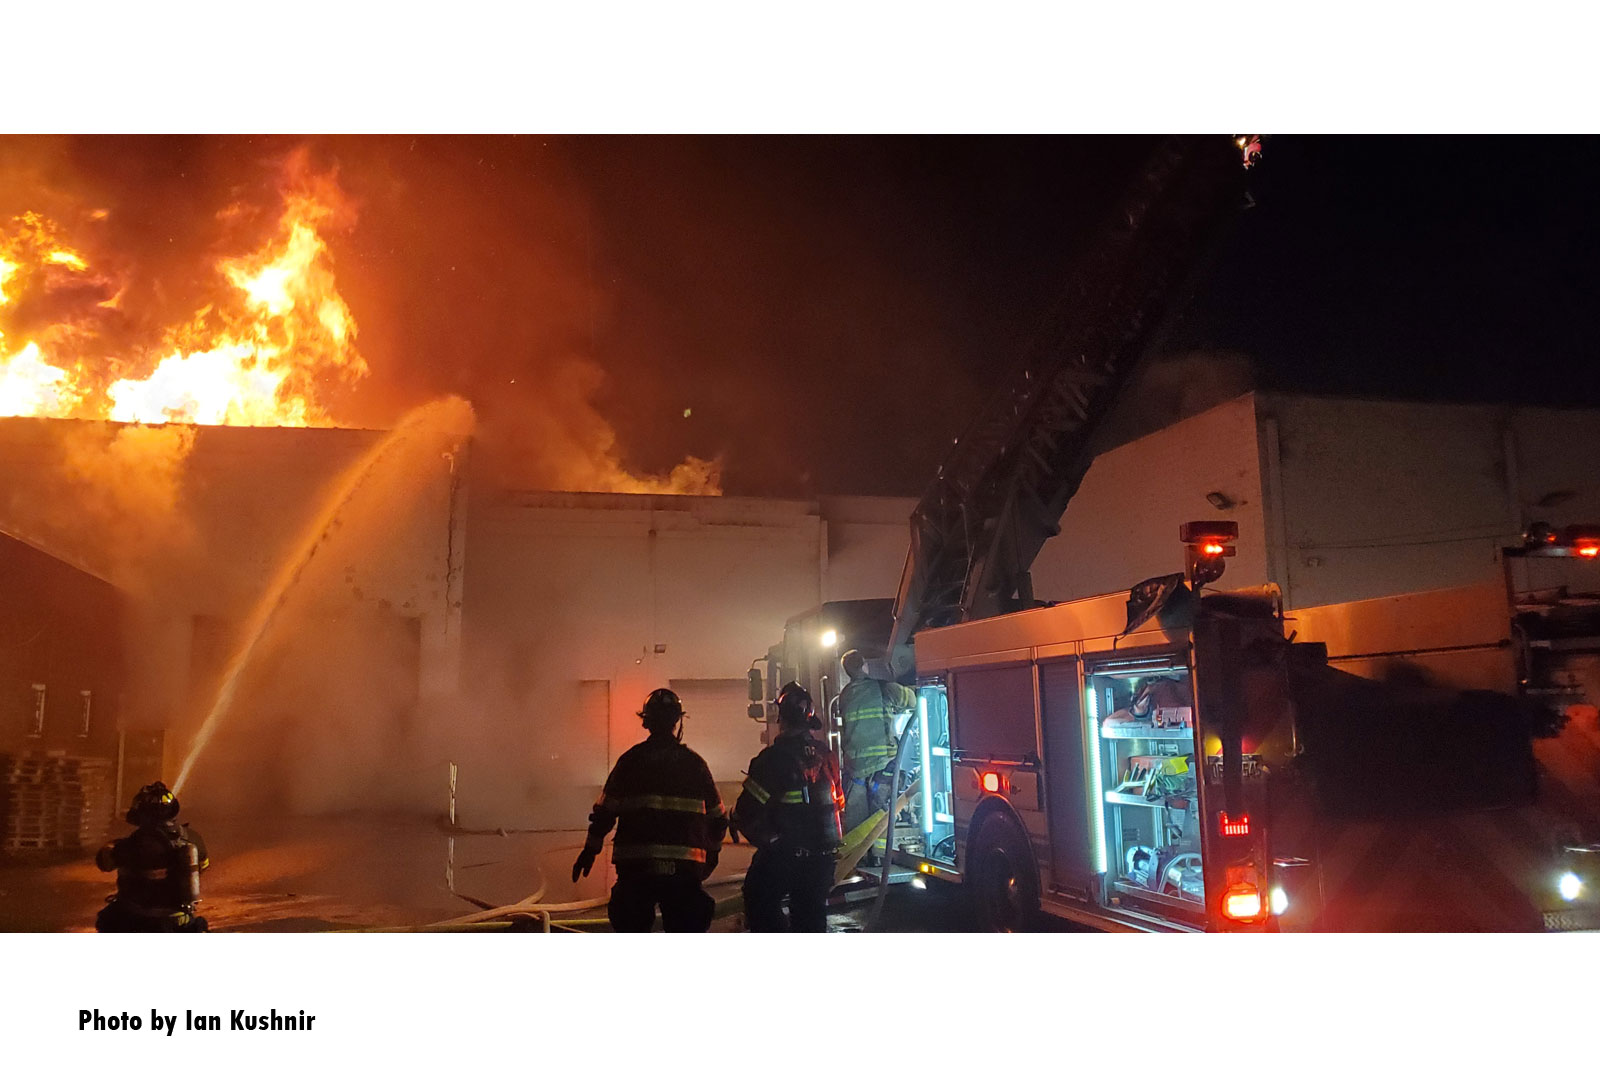 Firefighters at the scene of a massive fire in Dearborn, Michigan.